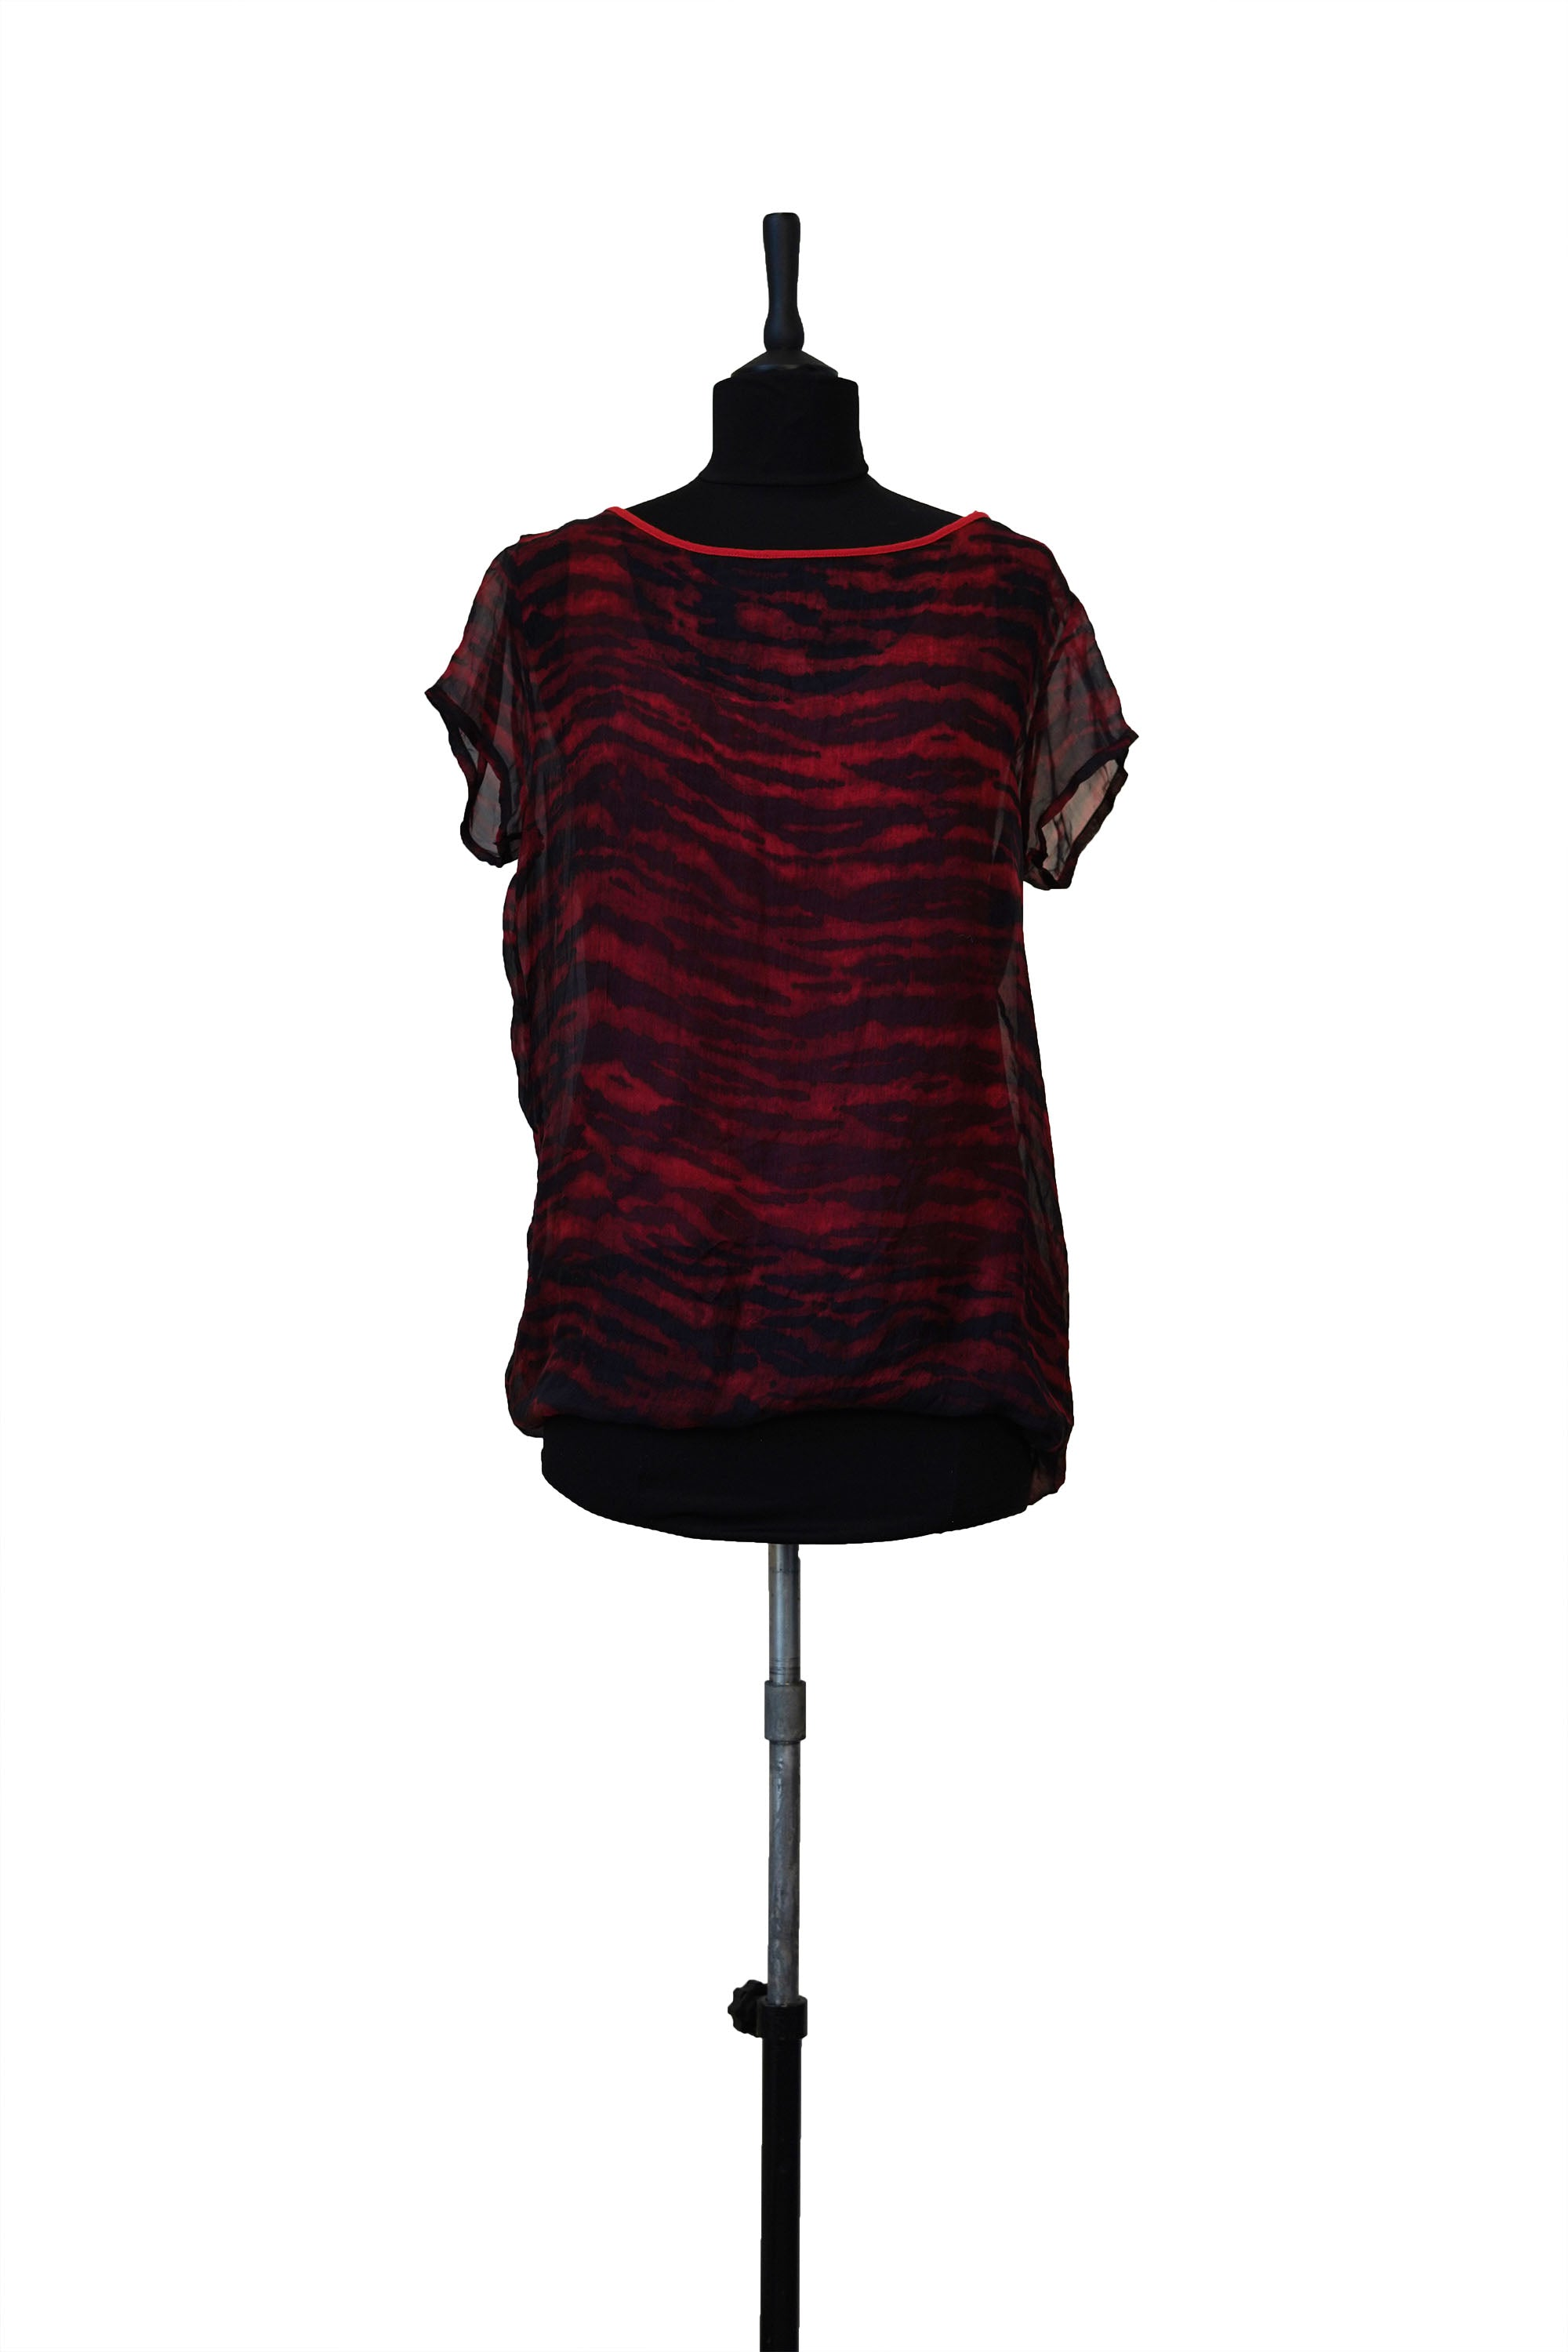 T-shirt Dries Van Noten